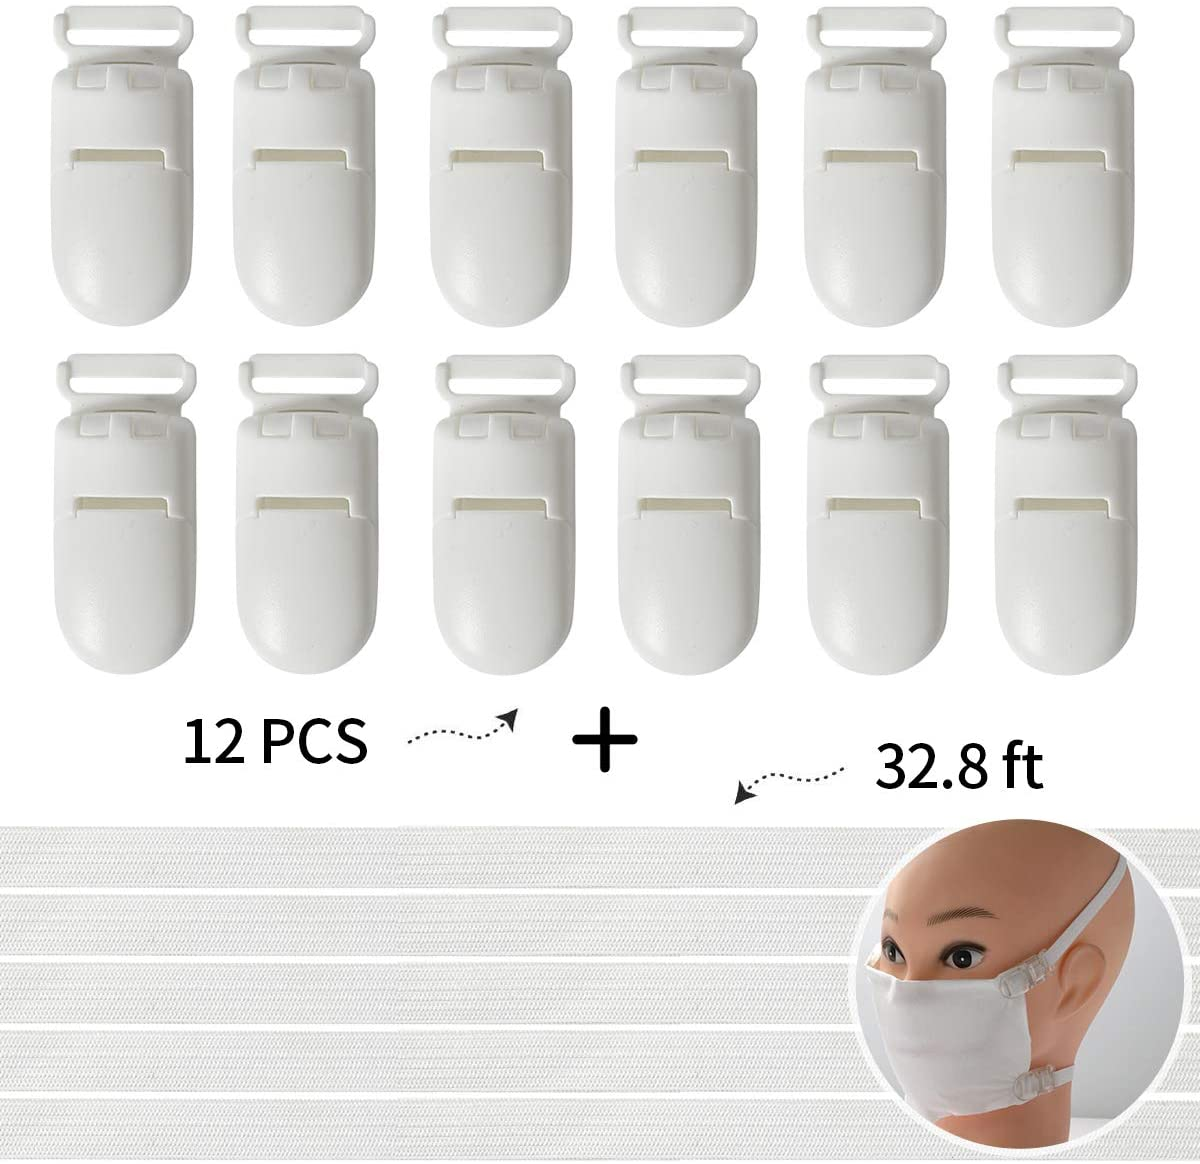 CORODER Mask DIY Universal Clip Elastic Band for Protect People Reuse Suitable Any Material